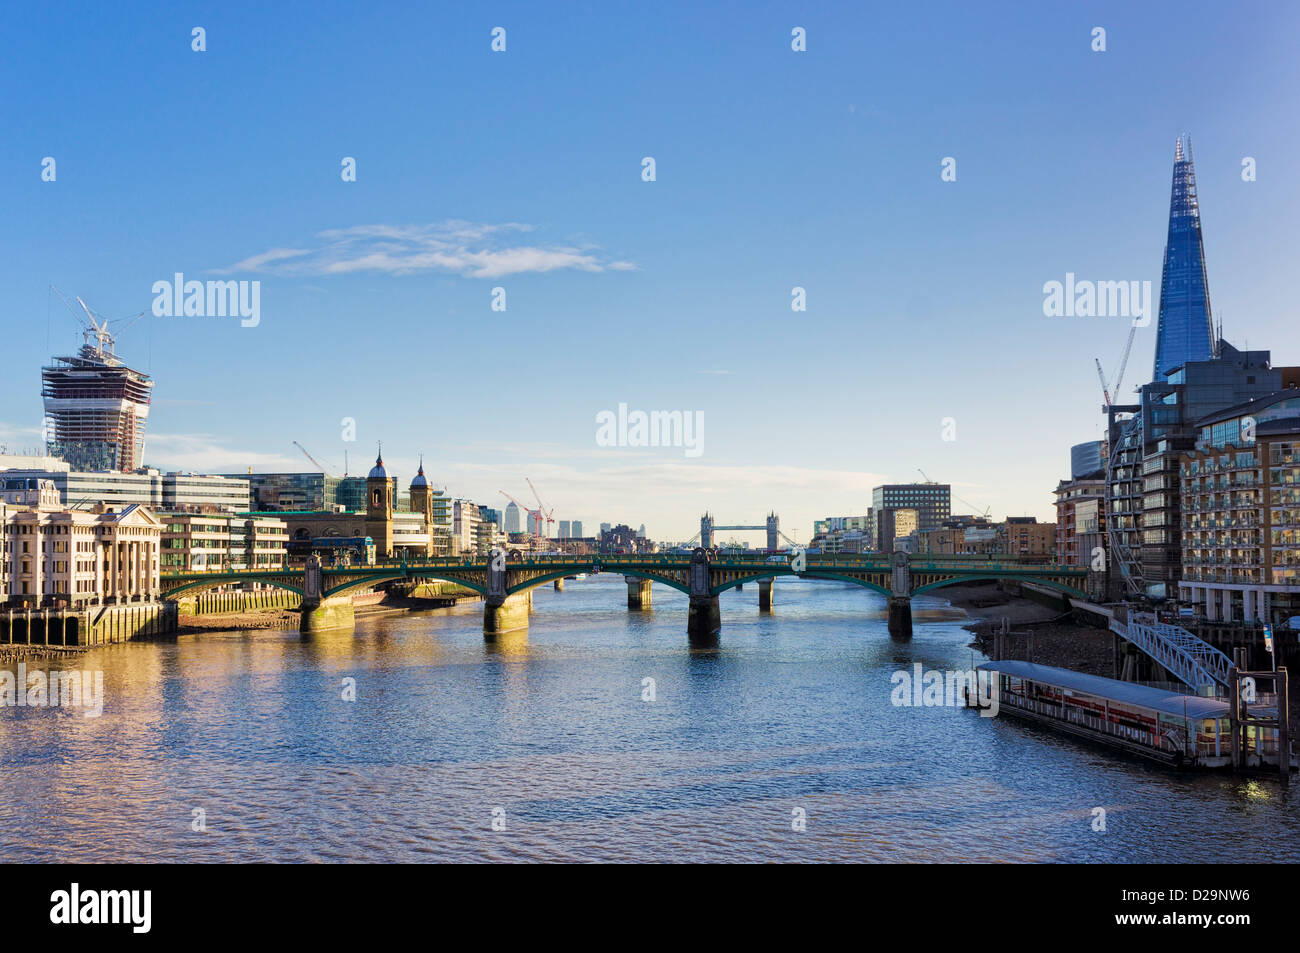 Southwark bridge over The River Thames and the city of London, England, UK - with the Shard - Stock Image